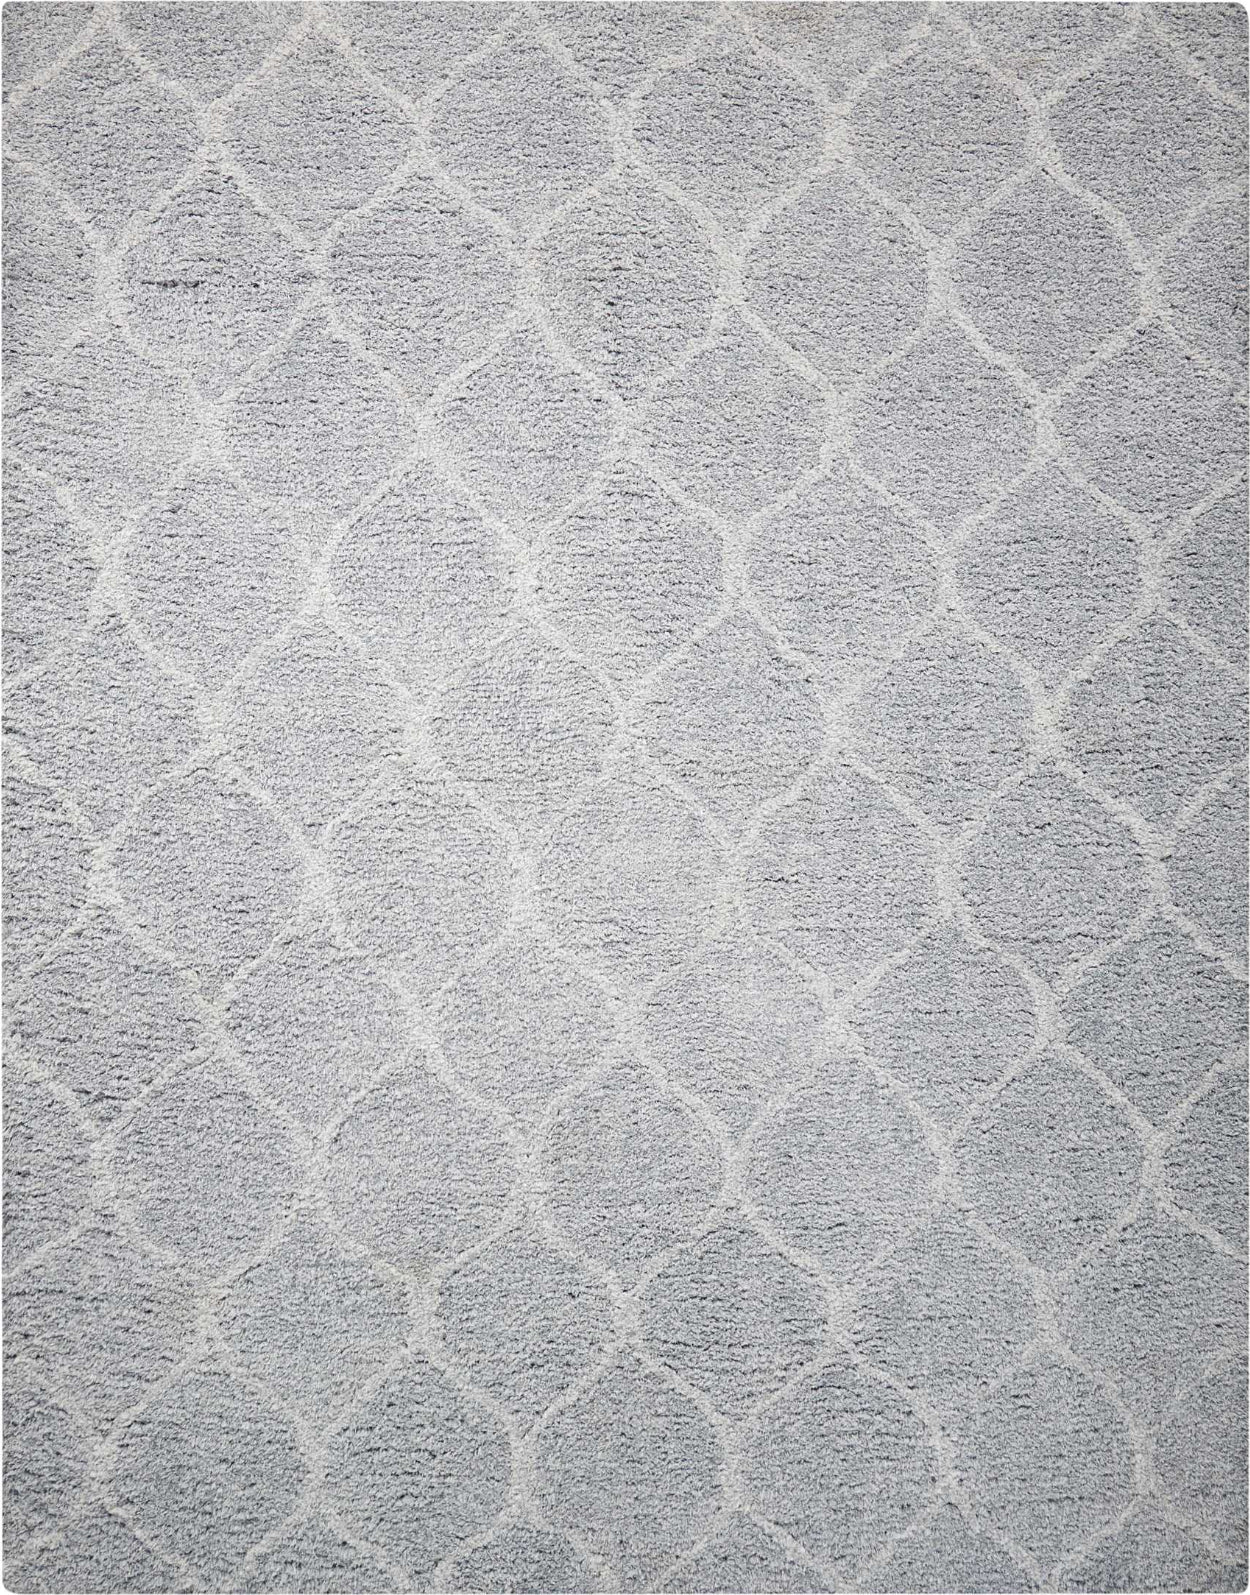 Nourison Galway GLW08 Light Grey Area Rug main image